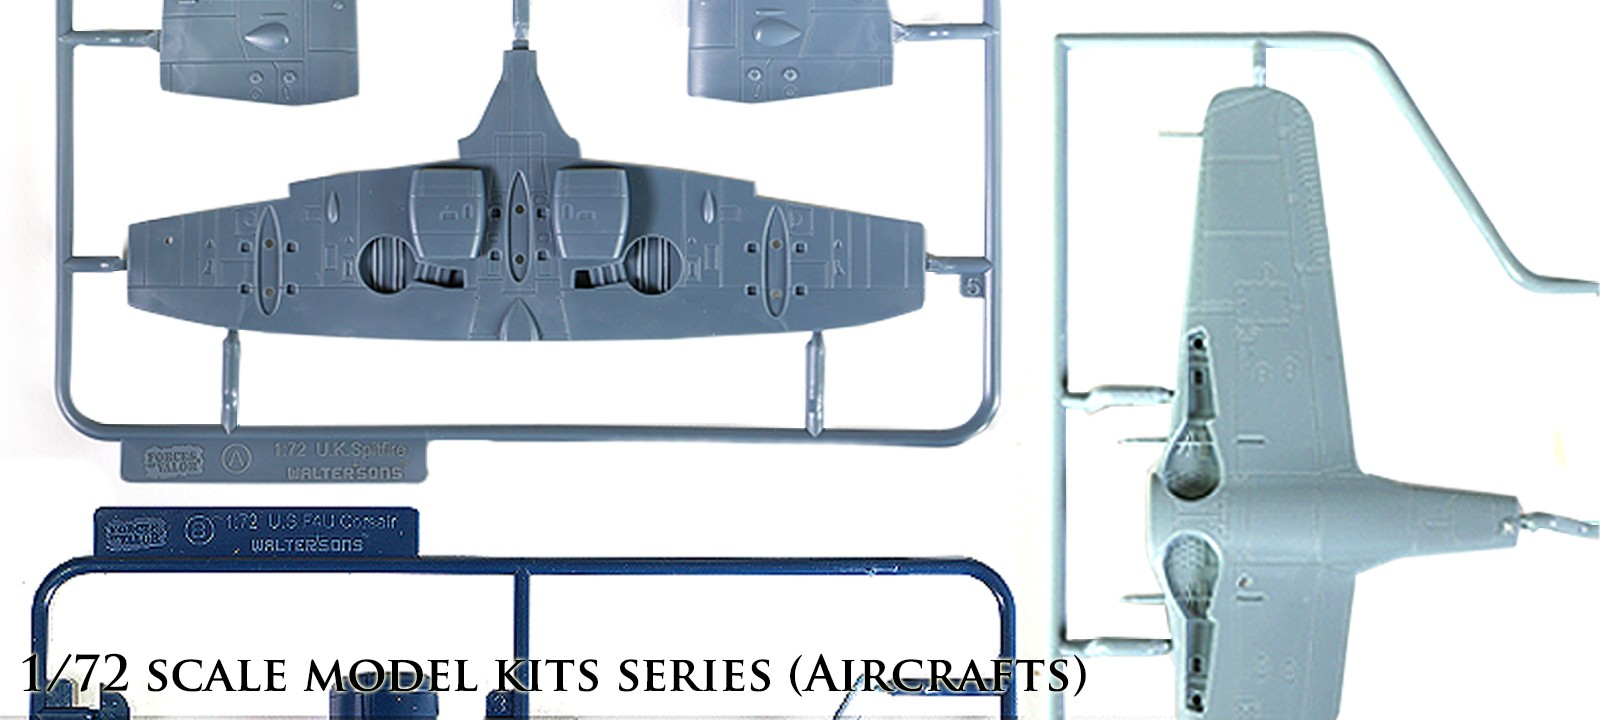 72nd scale model kits series (Aircrafts)